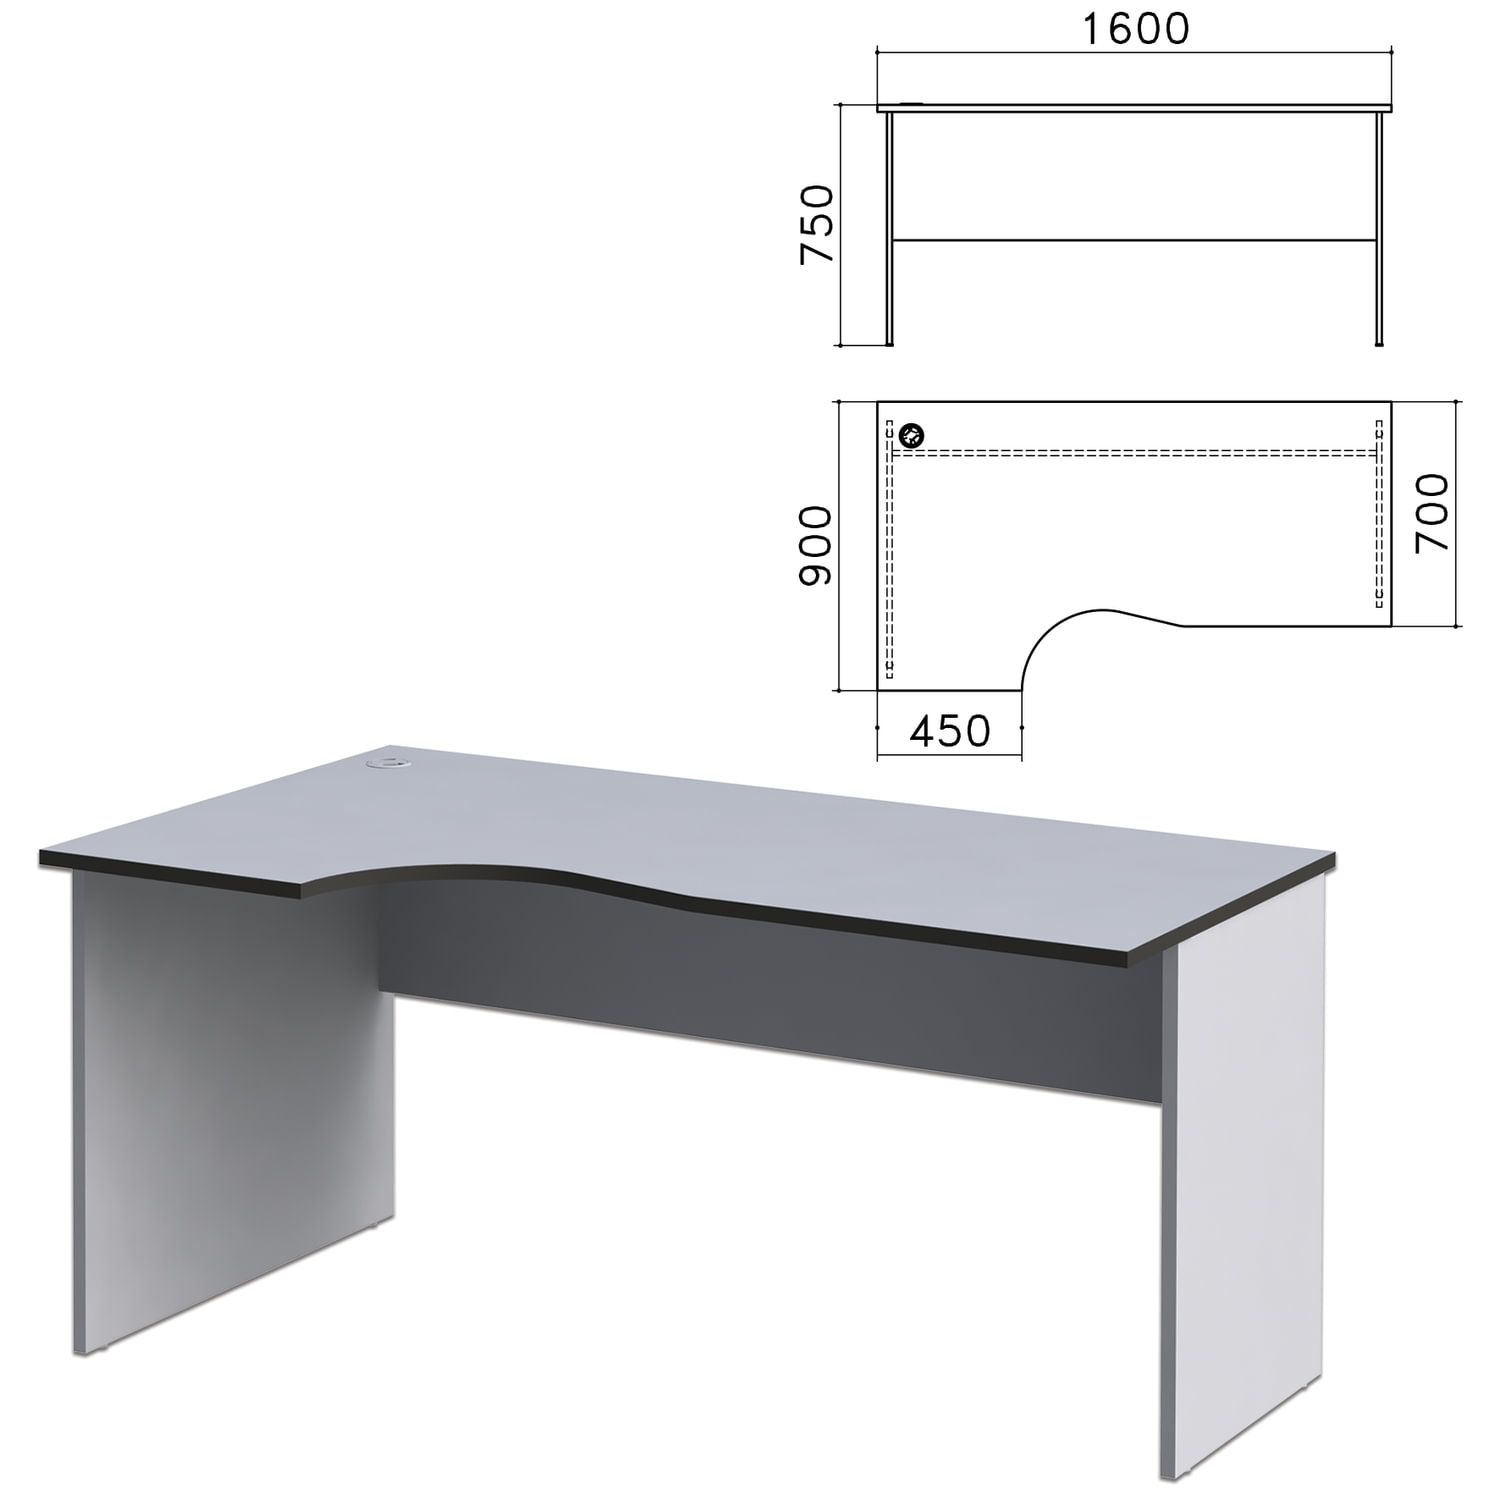 "Table written ergonomic ""Monolith,"" 1600s900s750 mm, left, gray color"